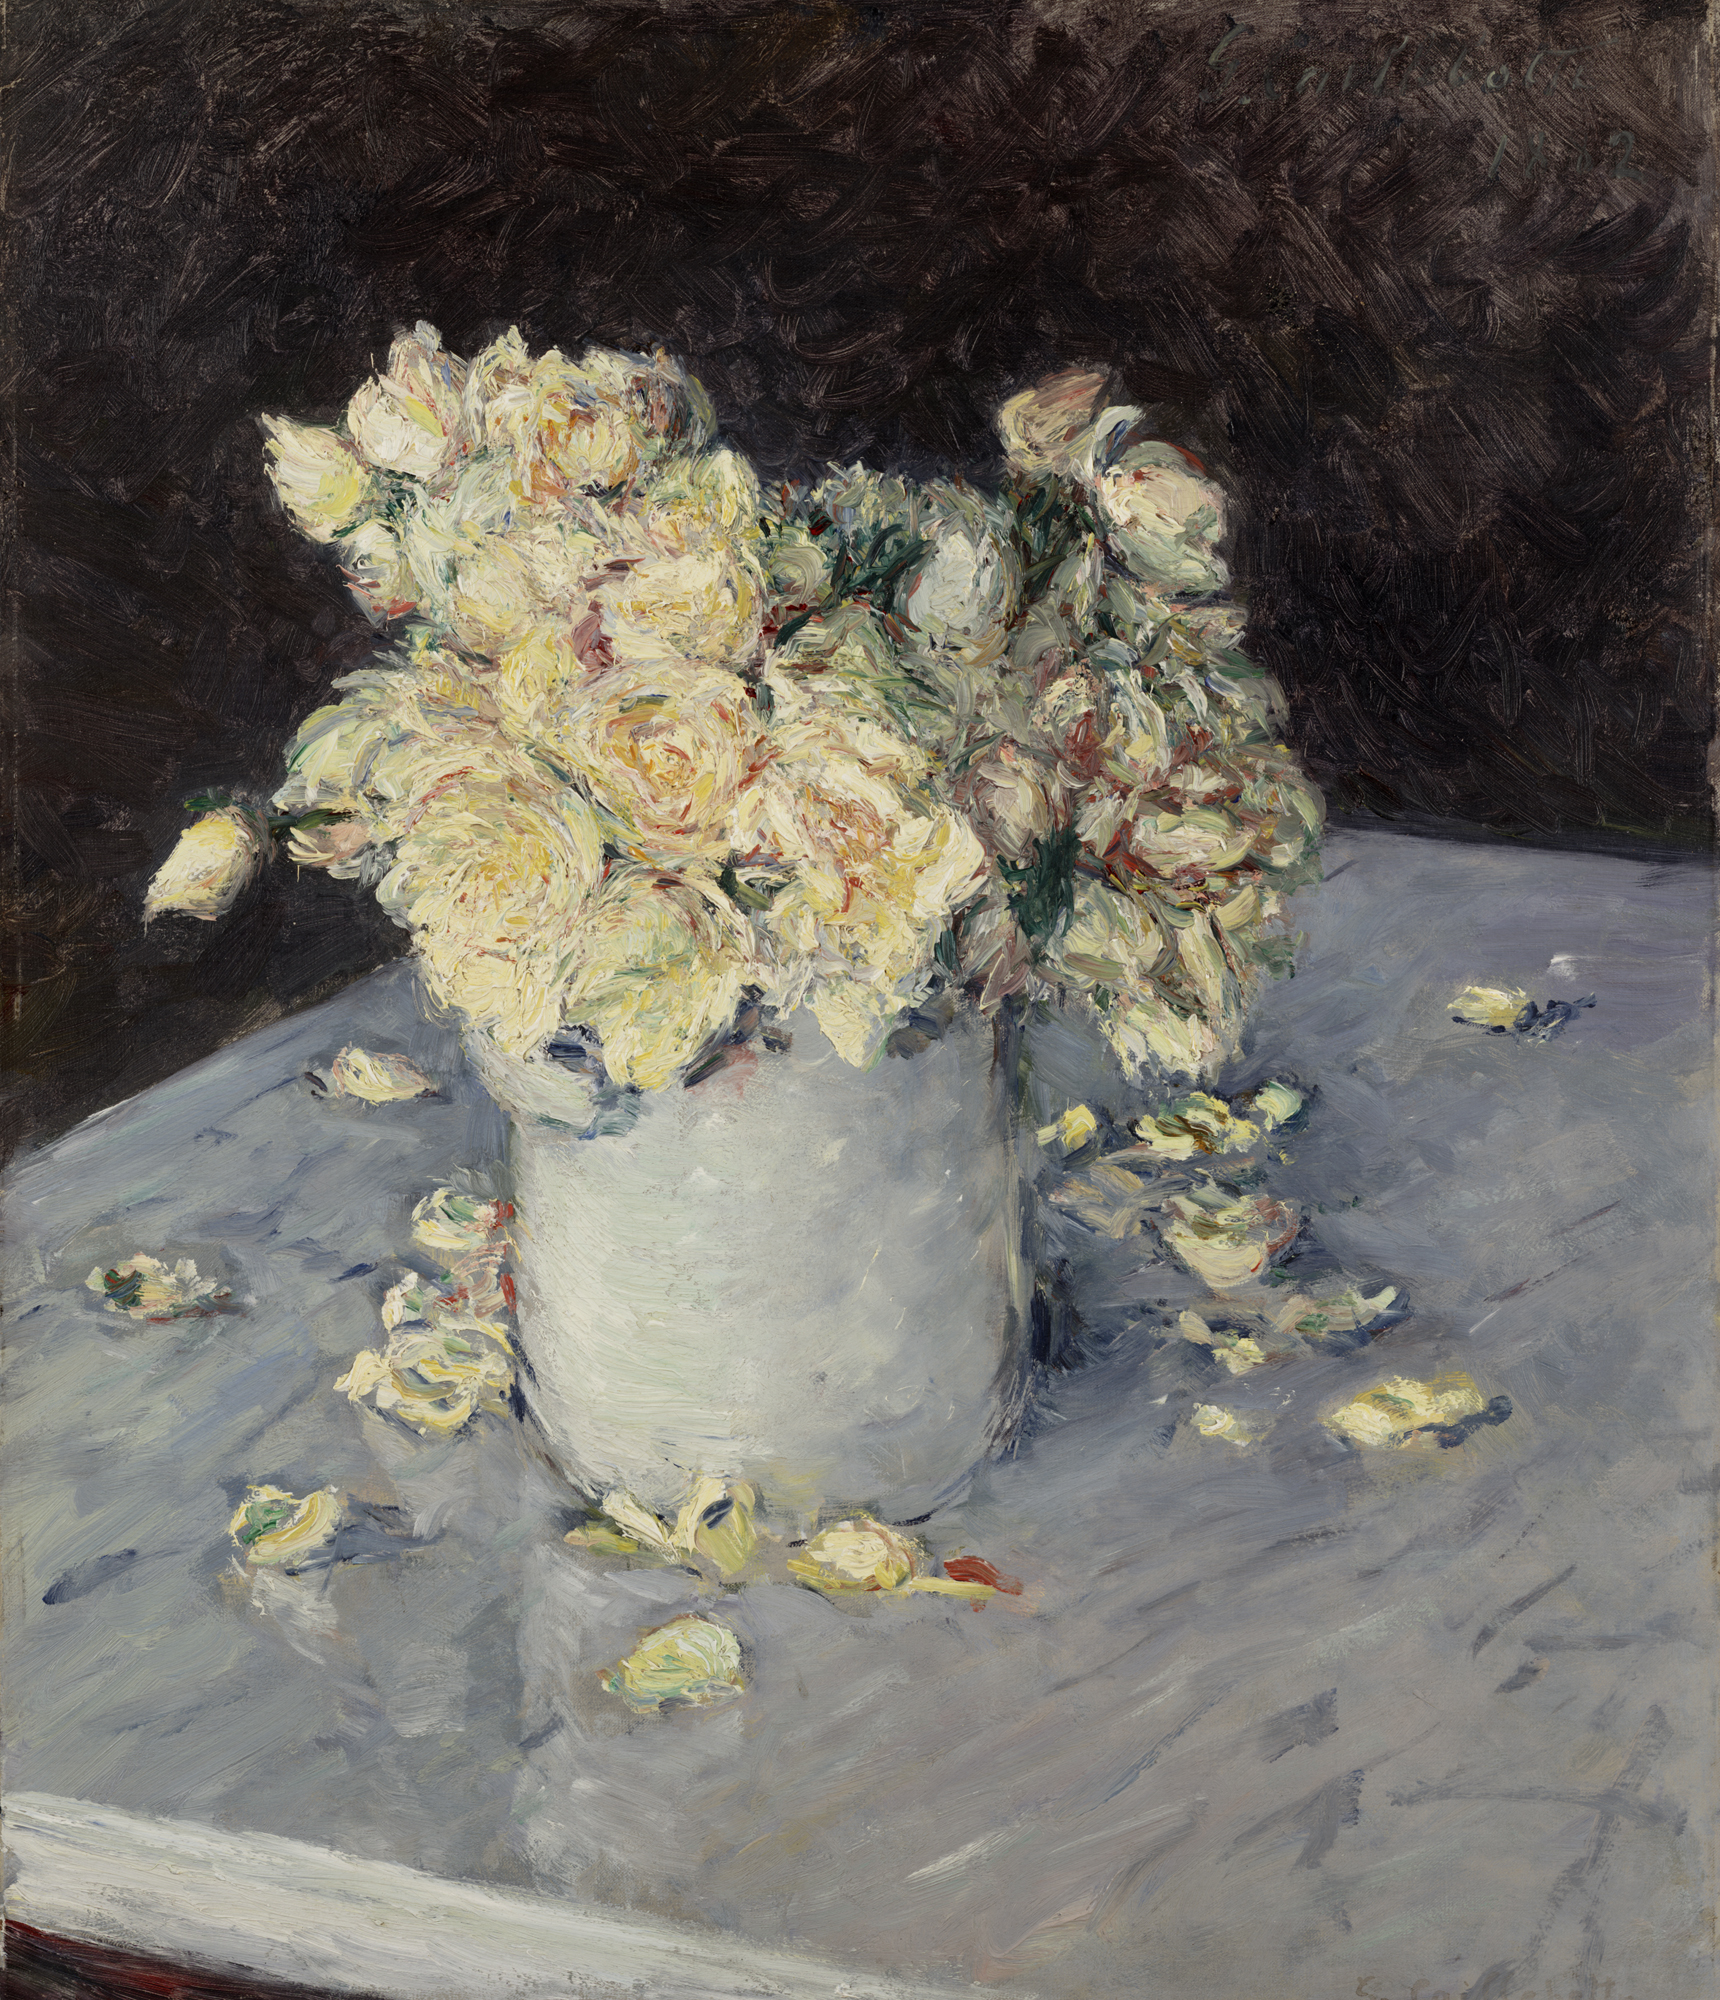 Cailebotte_-Yellow Roses in a Vase, 1882, Dallas Museum of Art